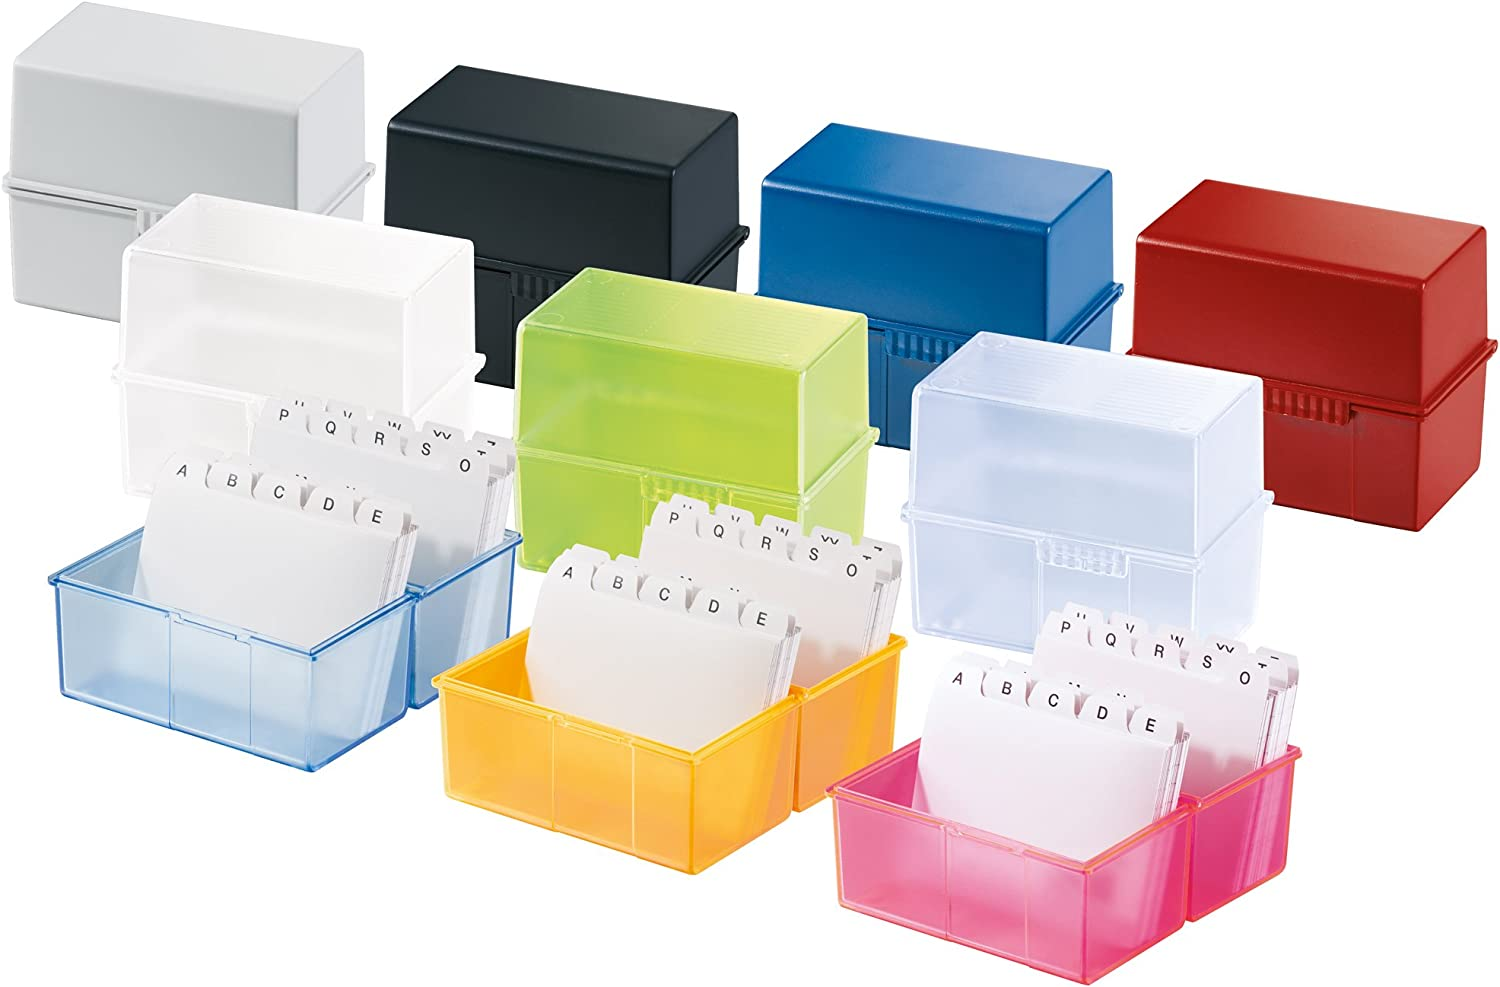 attractive design holds a maximum of 300 cards with steel hinge HAN 977-64 Innovative various colours to choose from translucent blue Card index box A7 landscape